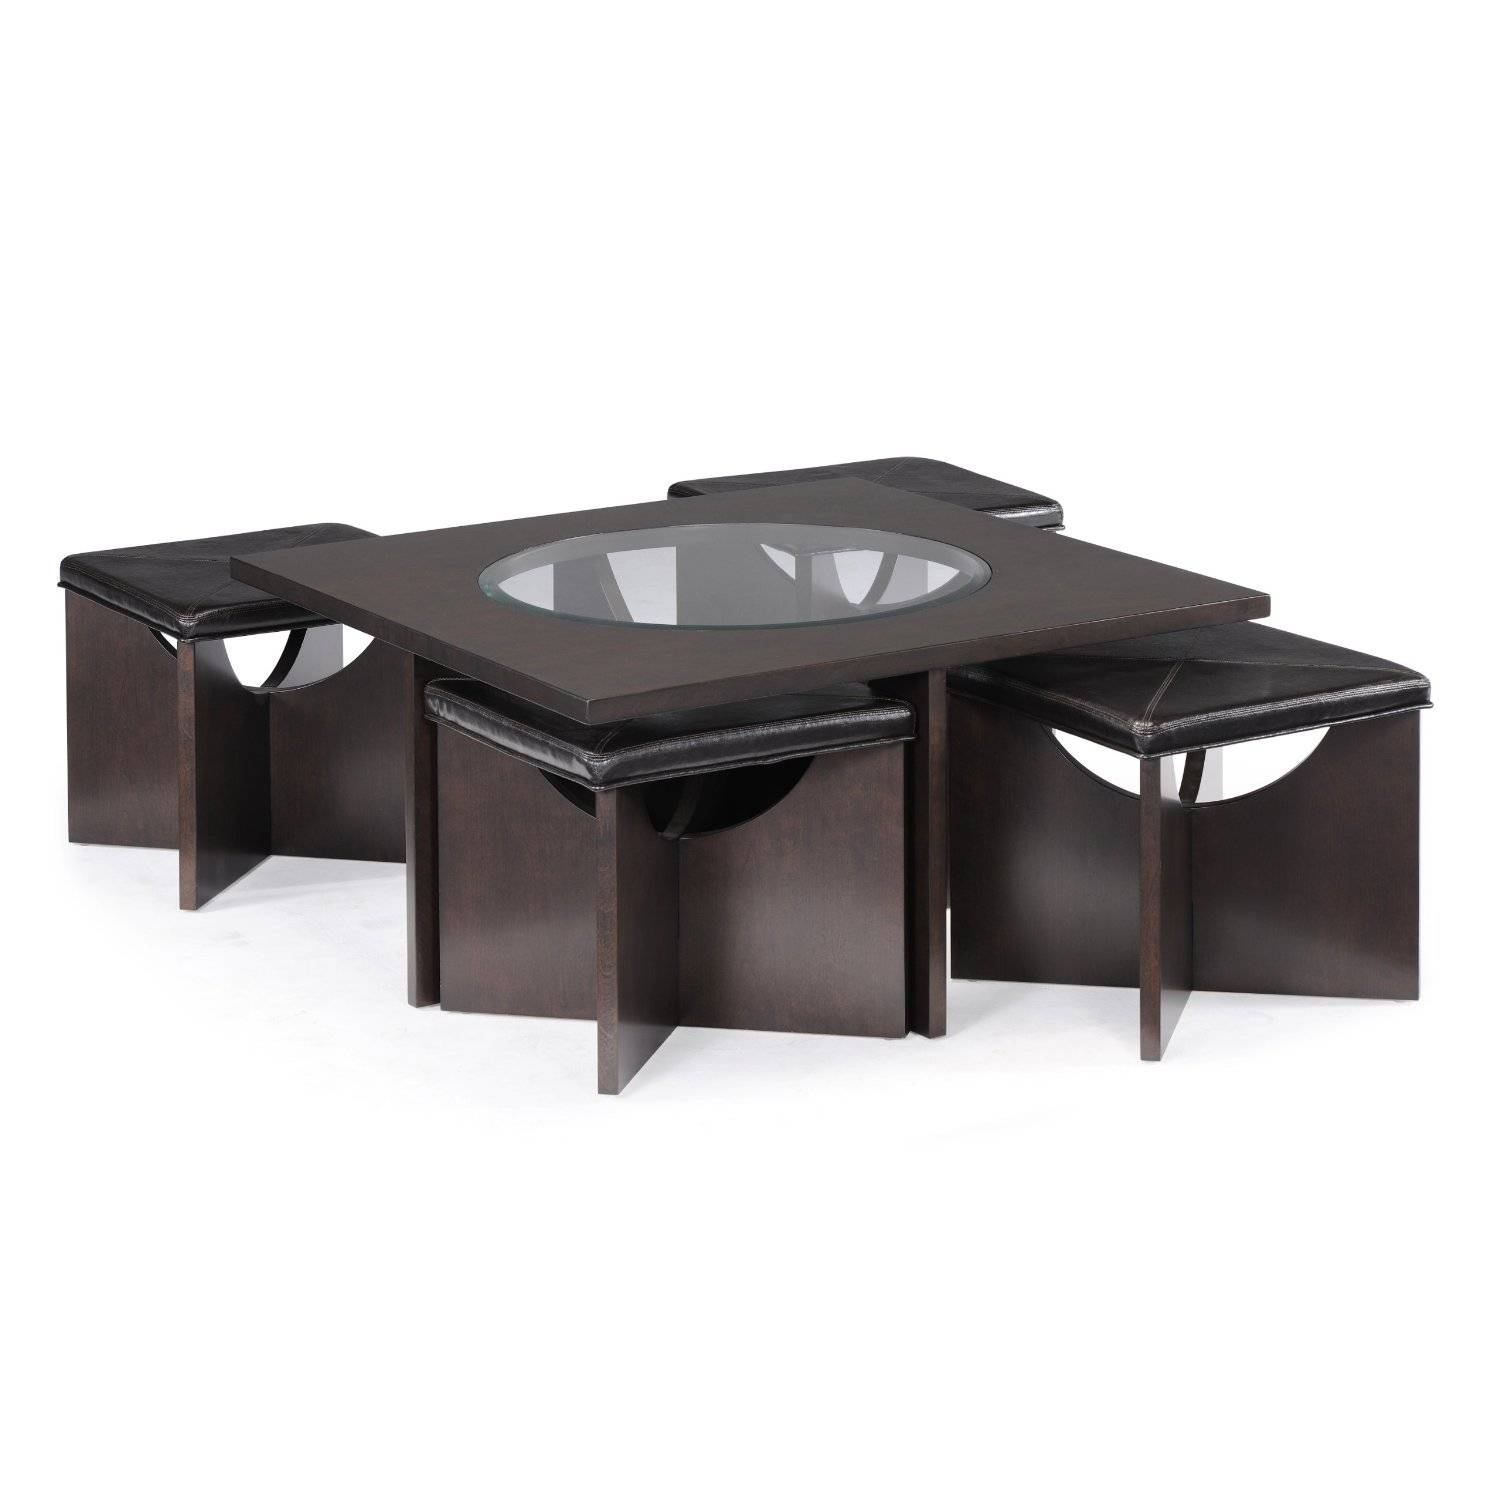 Furniture: Luxury Coffee Table With Stools For Living Room Inside Coffee Table With Stools (View 19 of 30)